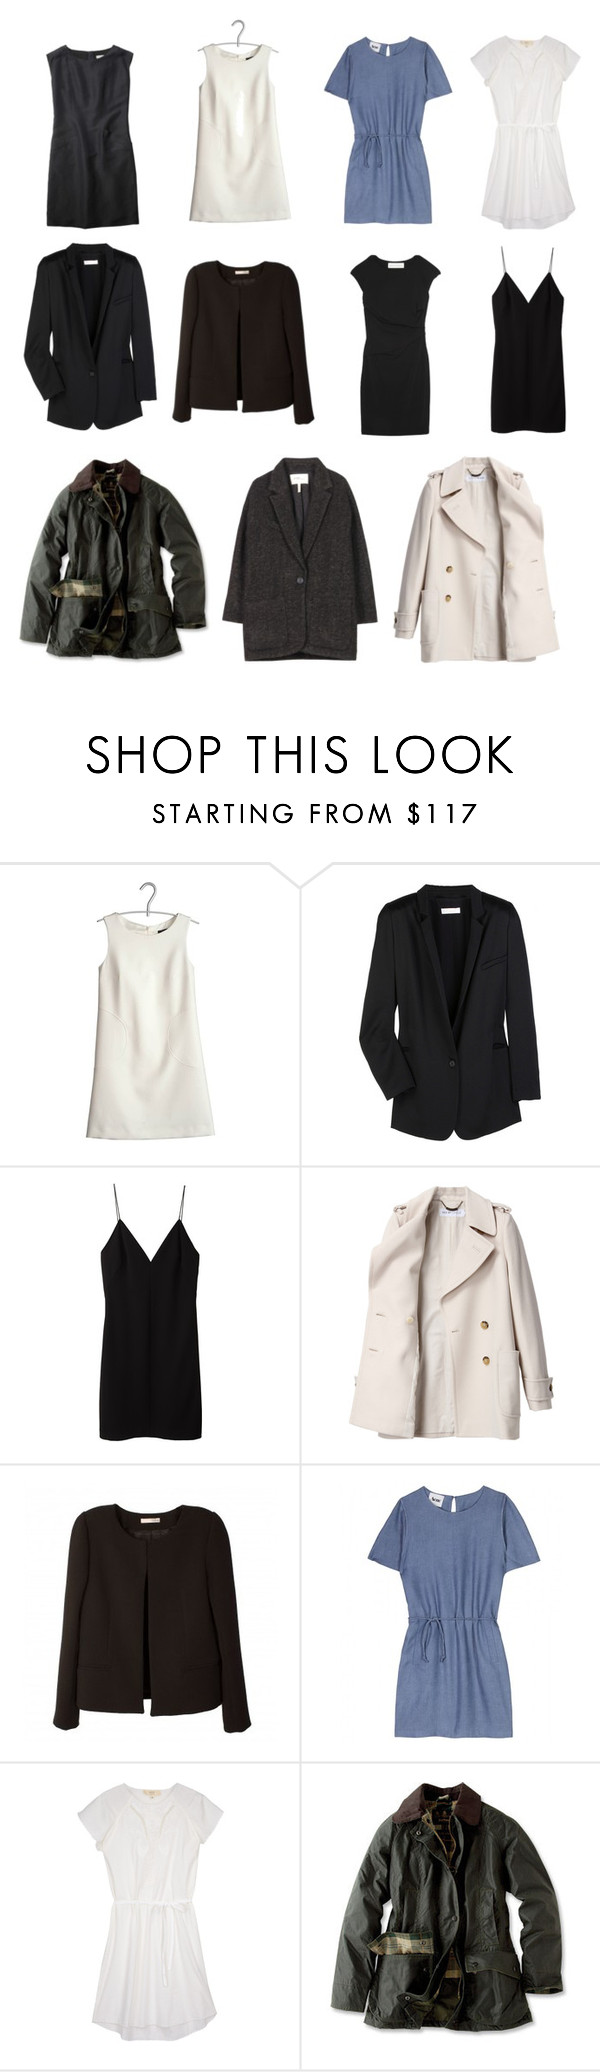 """Capsule Wardrobe--Coats, Jackets, and Dresses"" by stractstyle ❤ liked on Polyvore featuring Tara Jarmon, Chloé, Margaret Howell, T By Alexander Wang, Graham & Spencer, See by Chloé, BA&SH, Acne Studios, Vanessa Bruno Athé and Barbour"